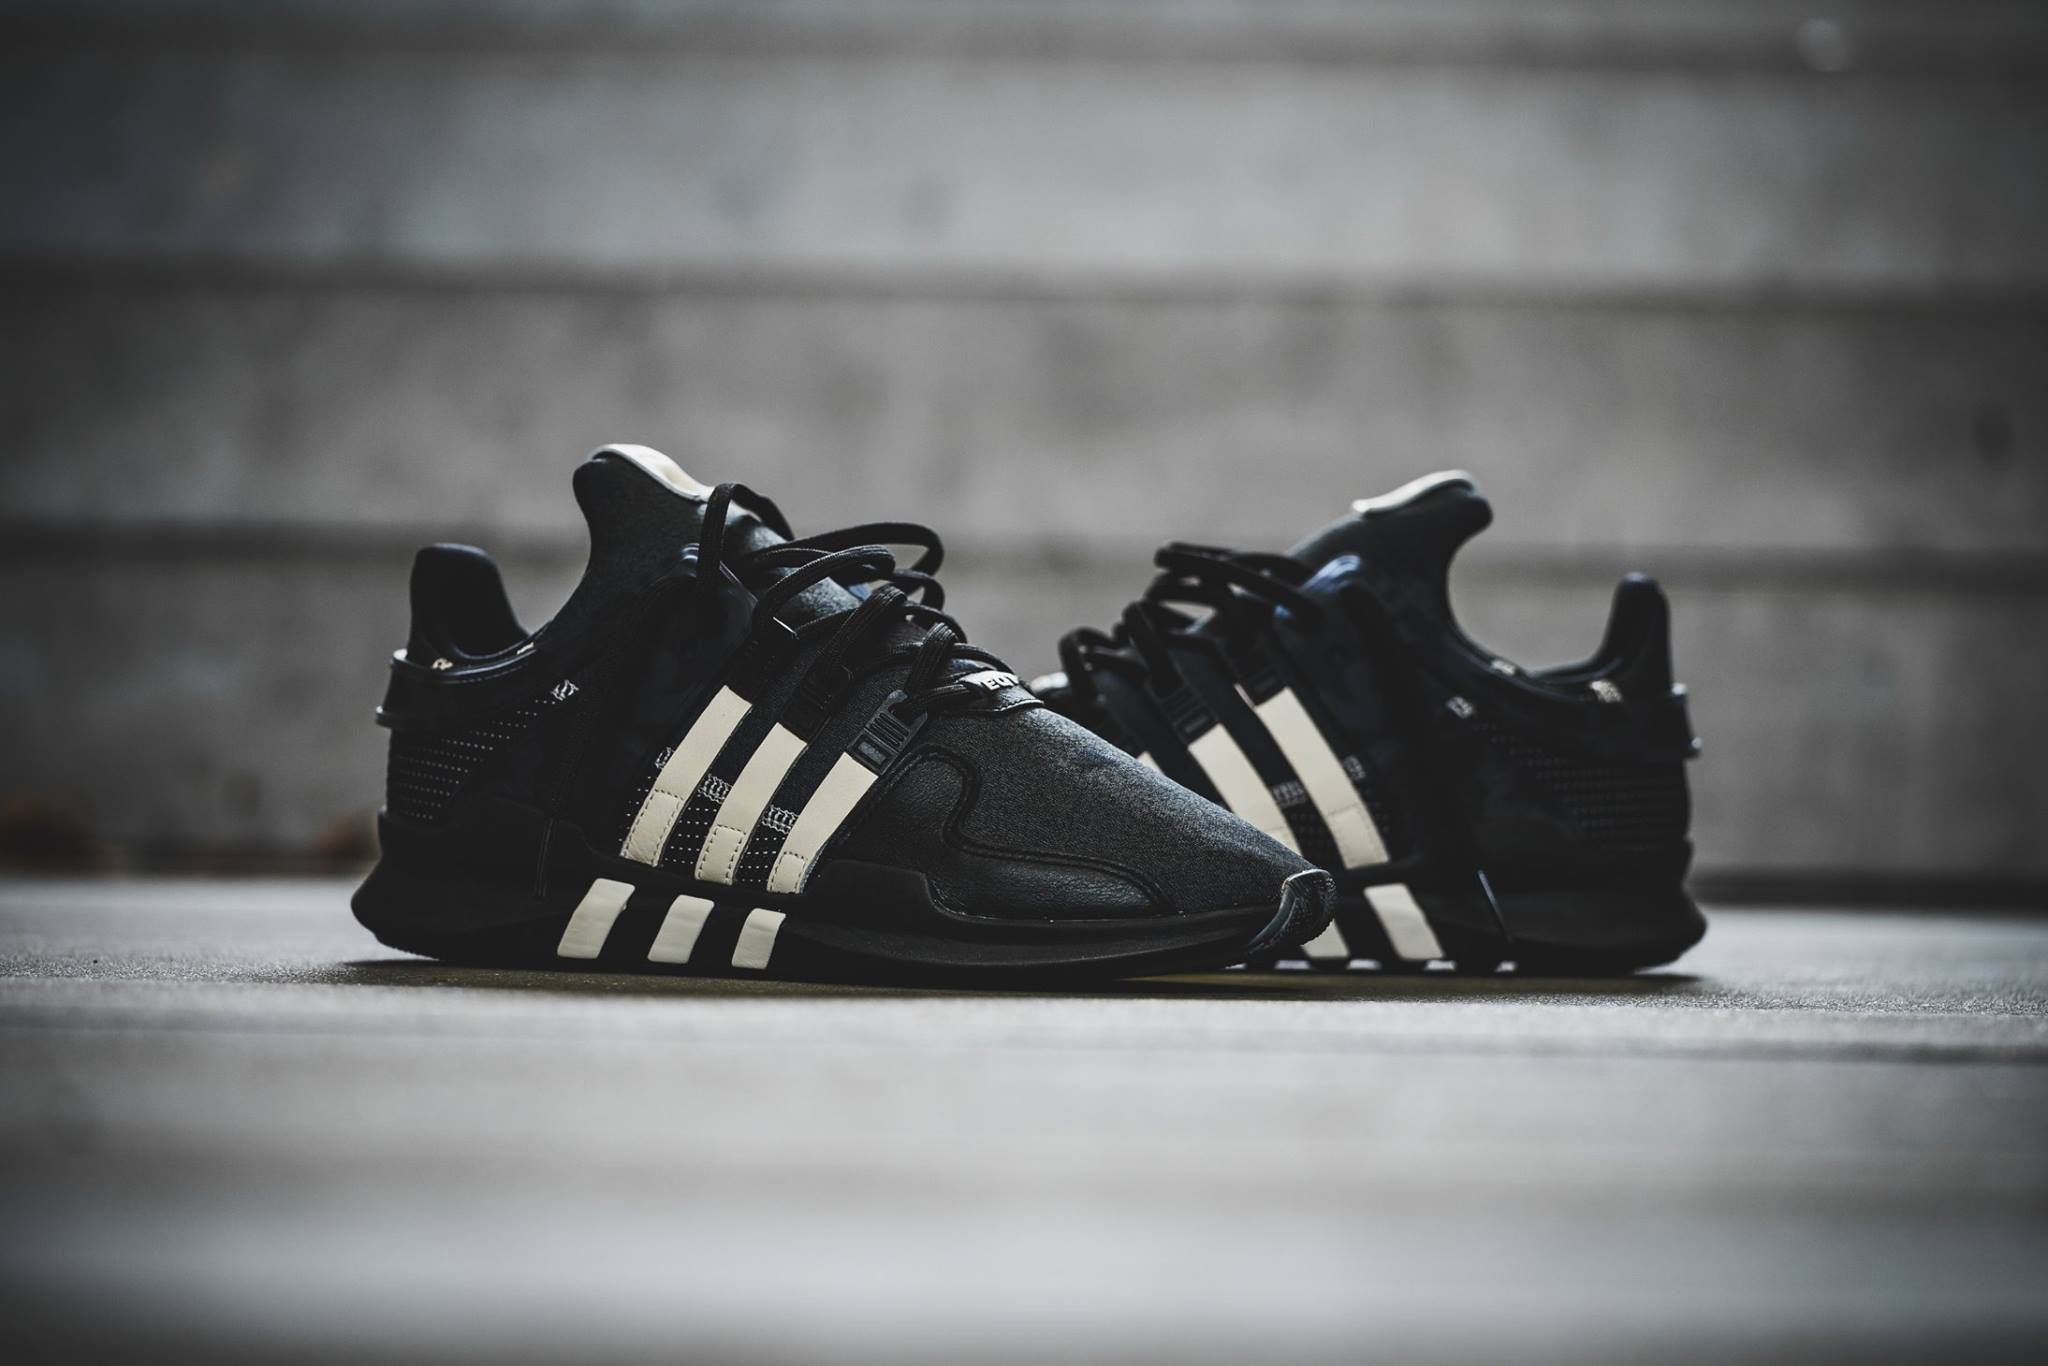 Adidas EQT Support 93/17 (Core Black & Turbo) End